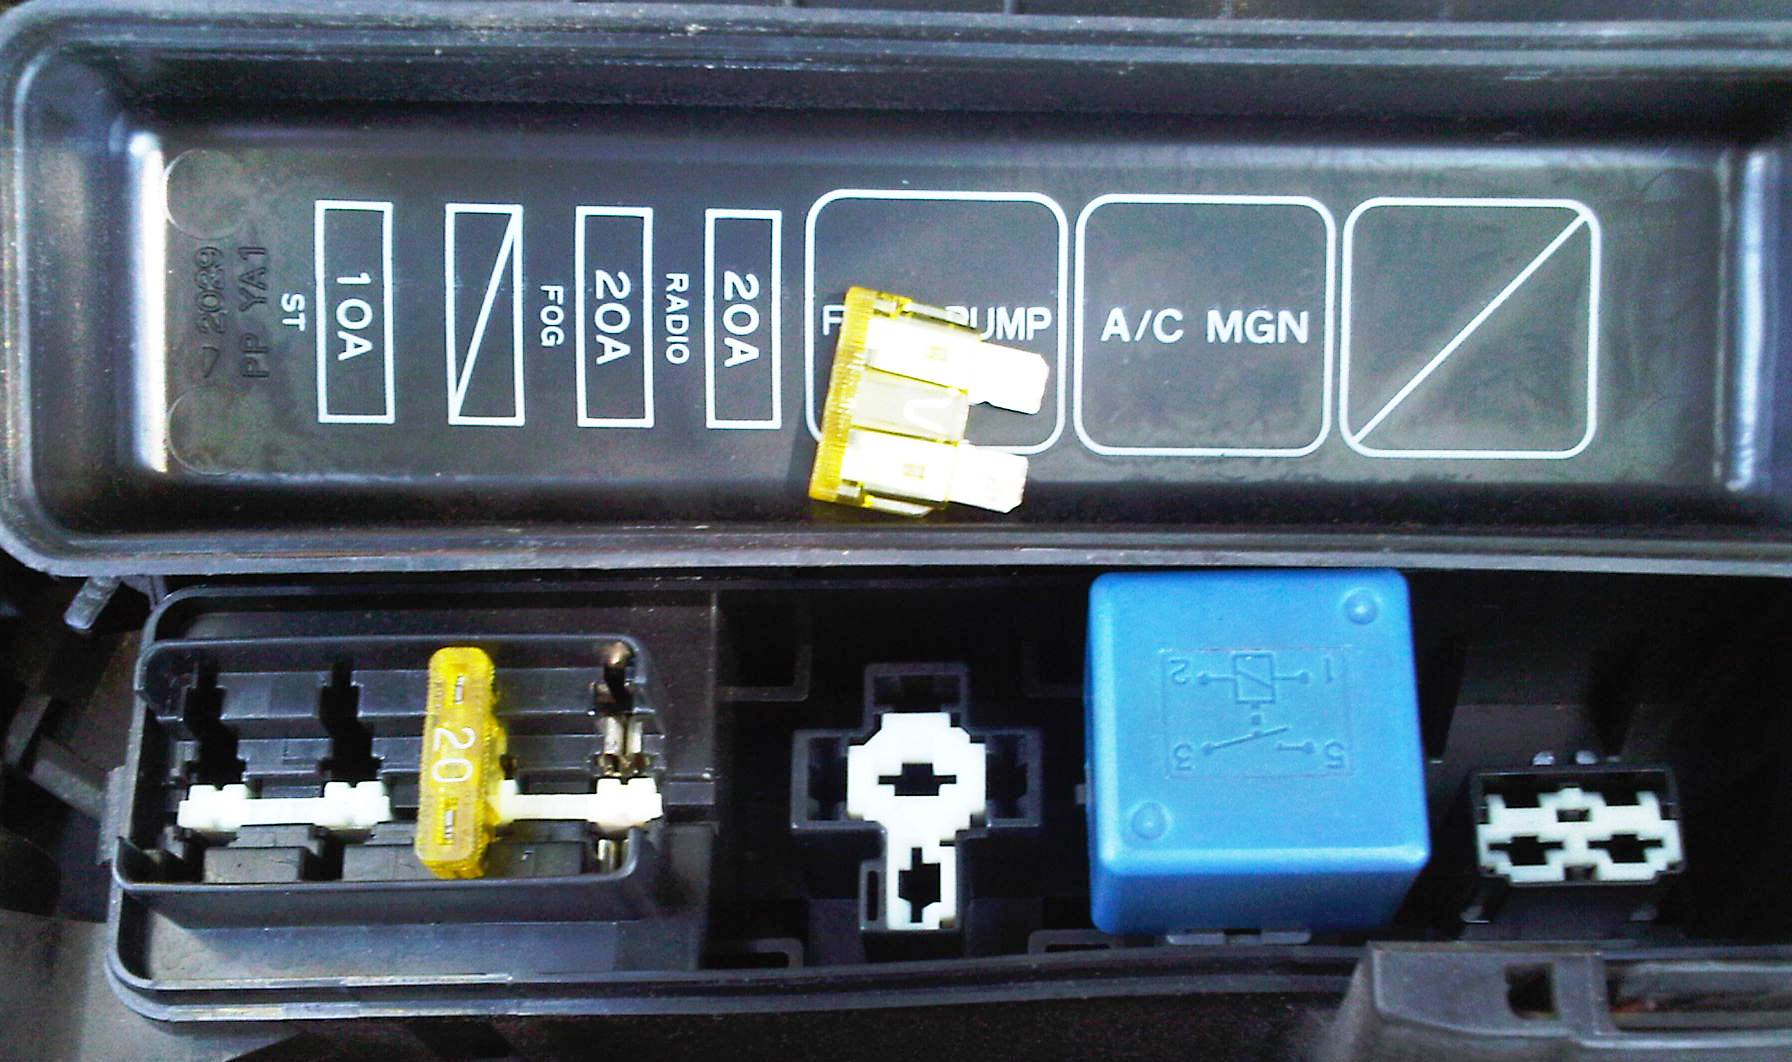 August 2010 The Midnight Engineer How To Test Car Fuse Box With Multimeter Reading On Dropped From 059 A 003